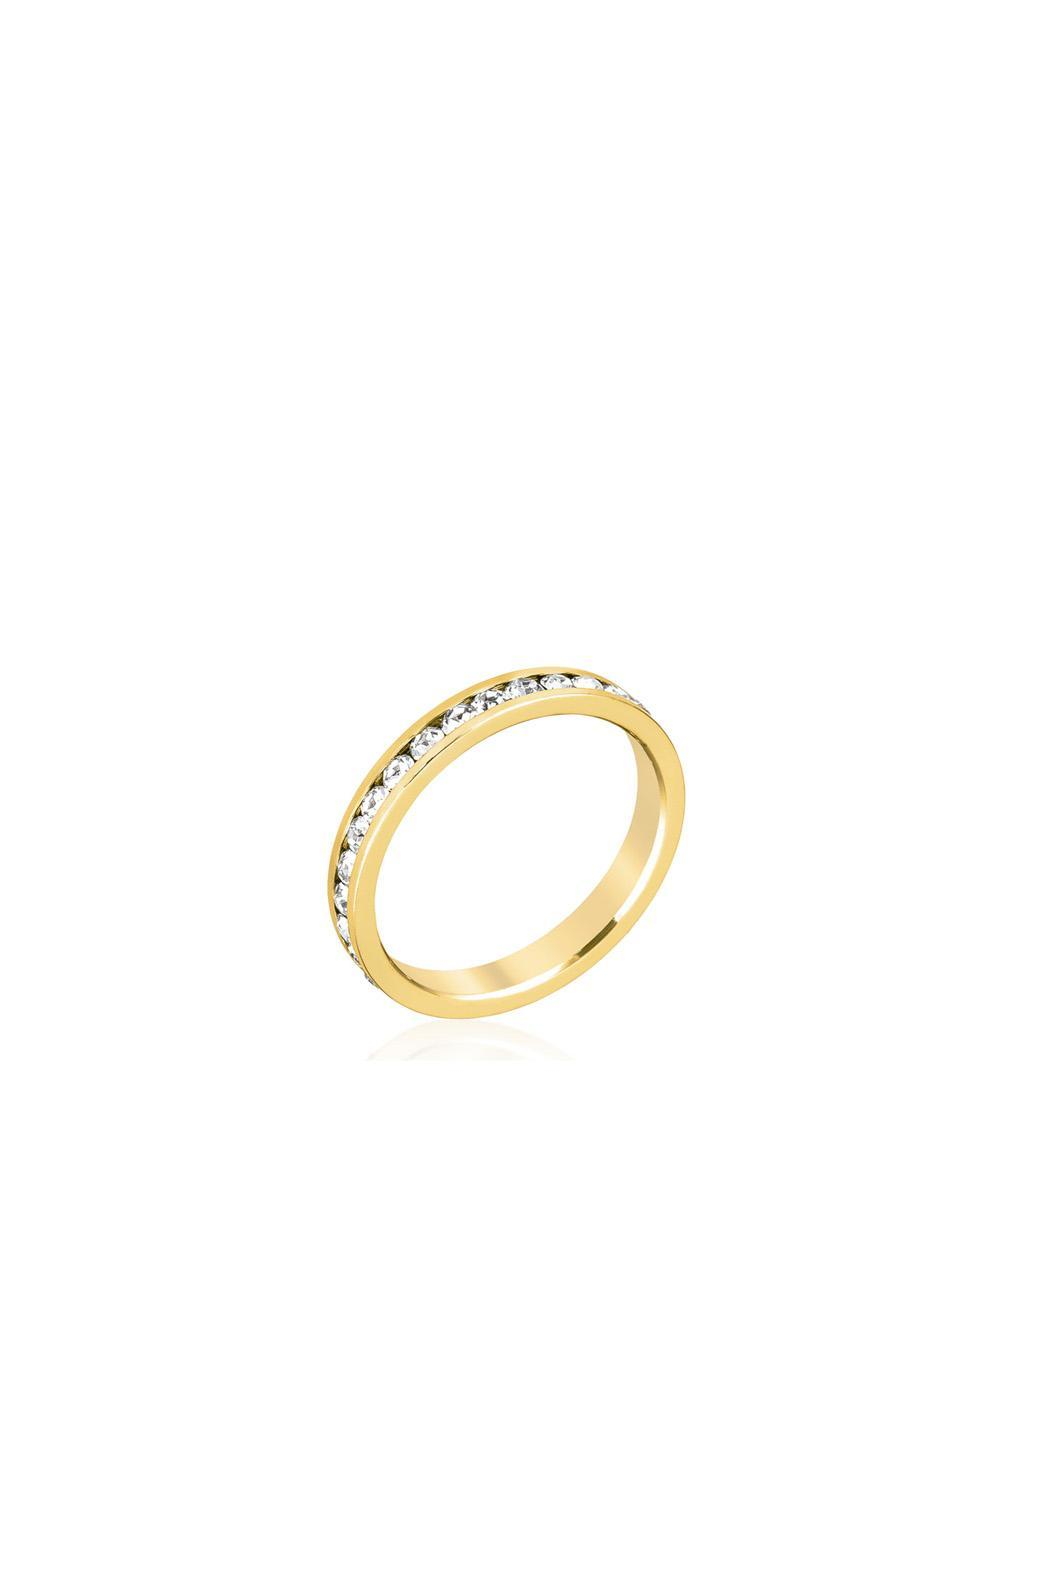 Wild Lilies Jewelry  Gold Band Ring - Main Image